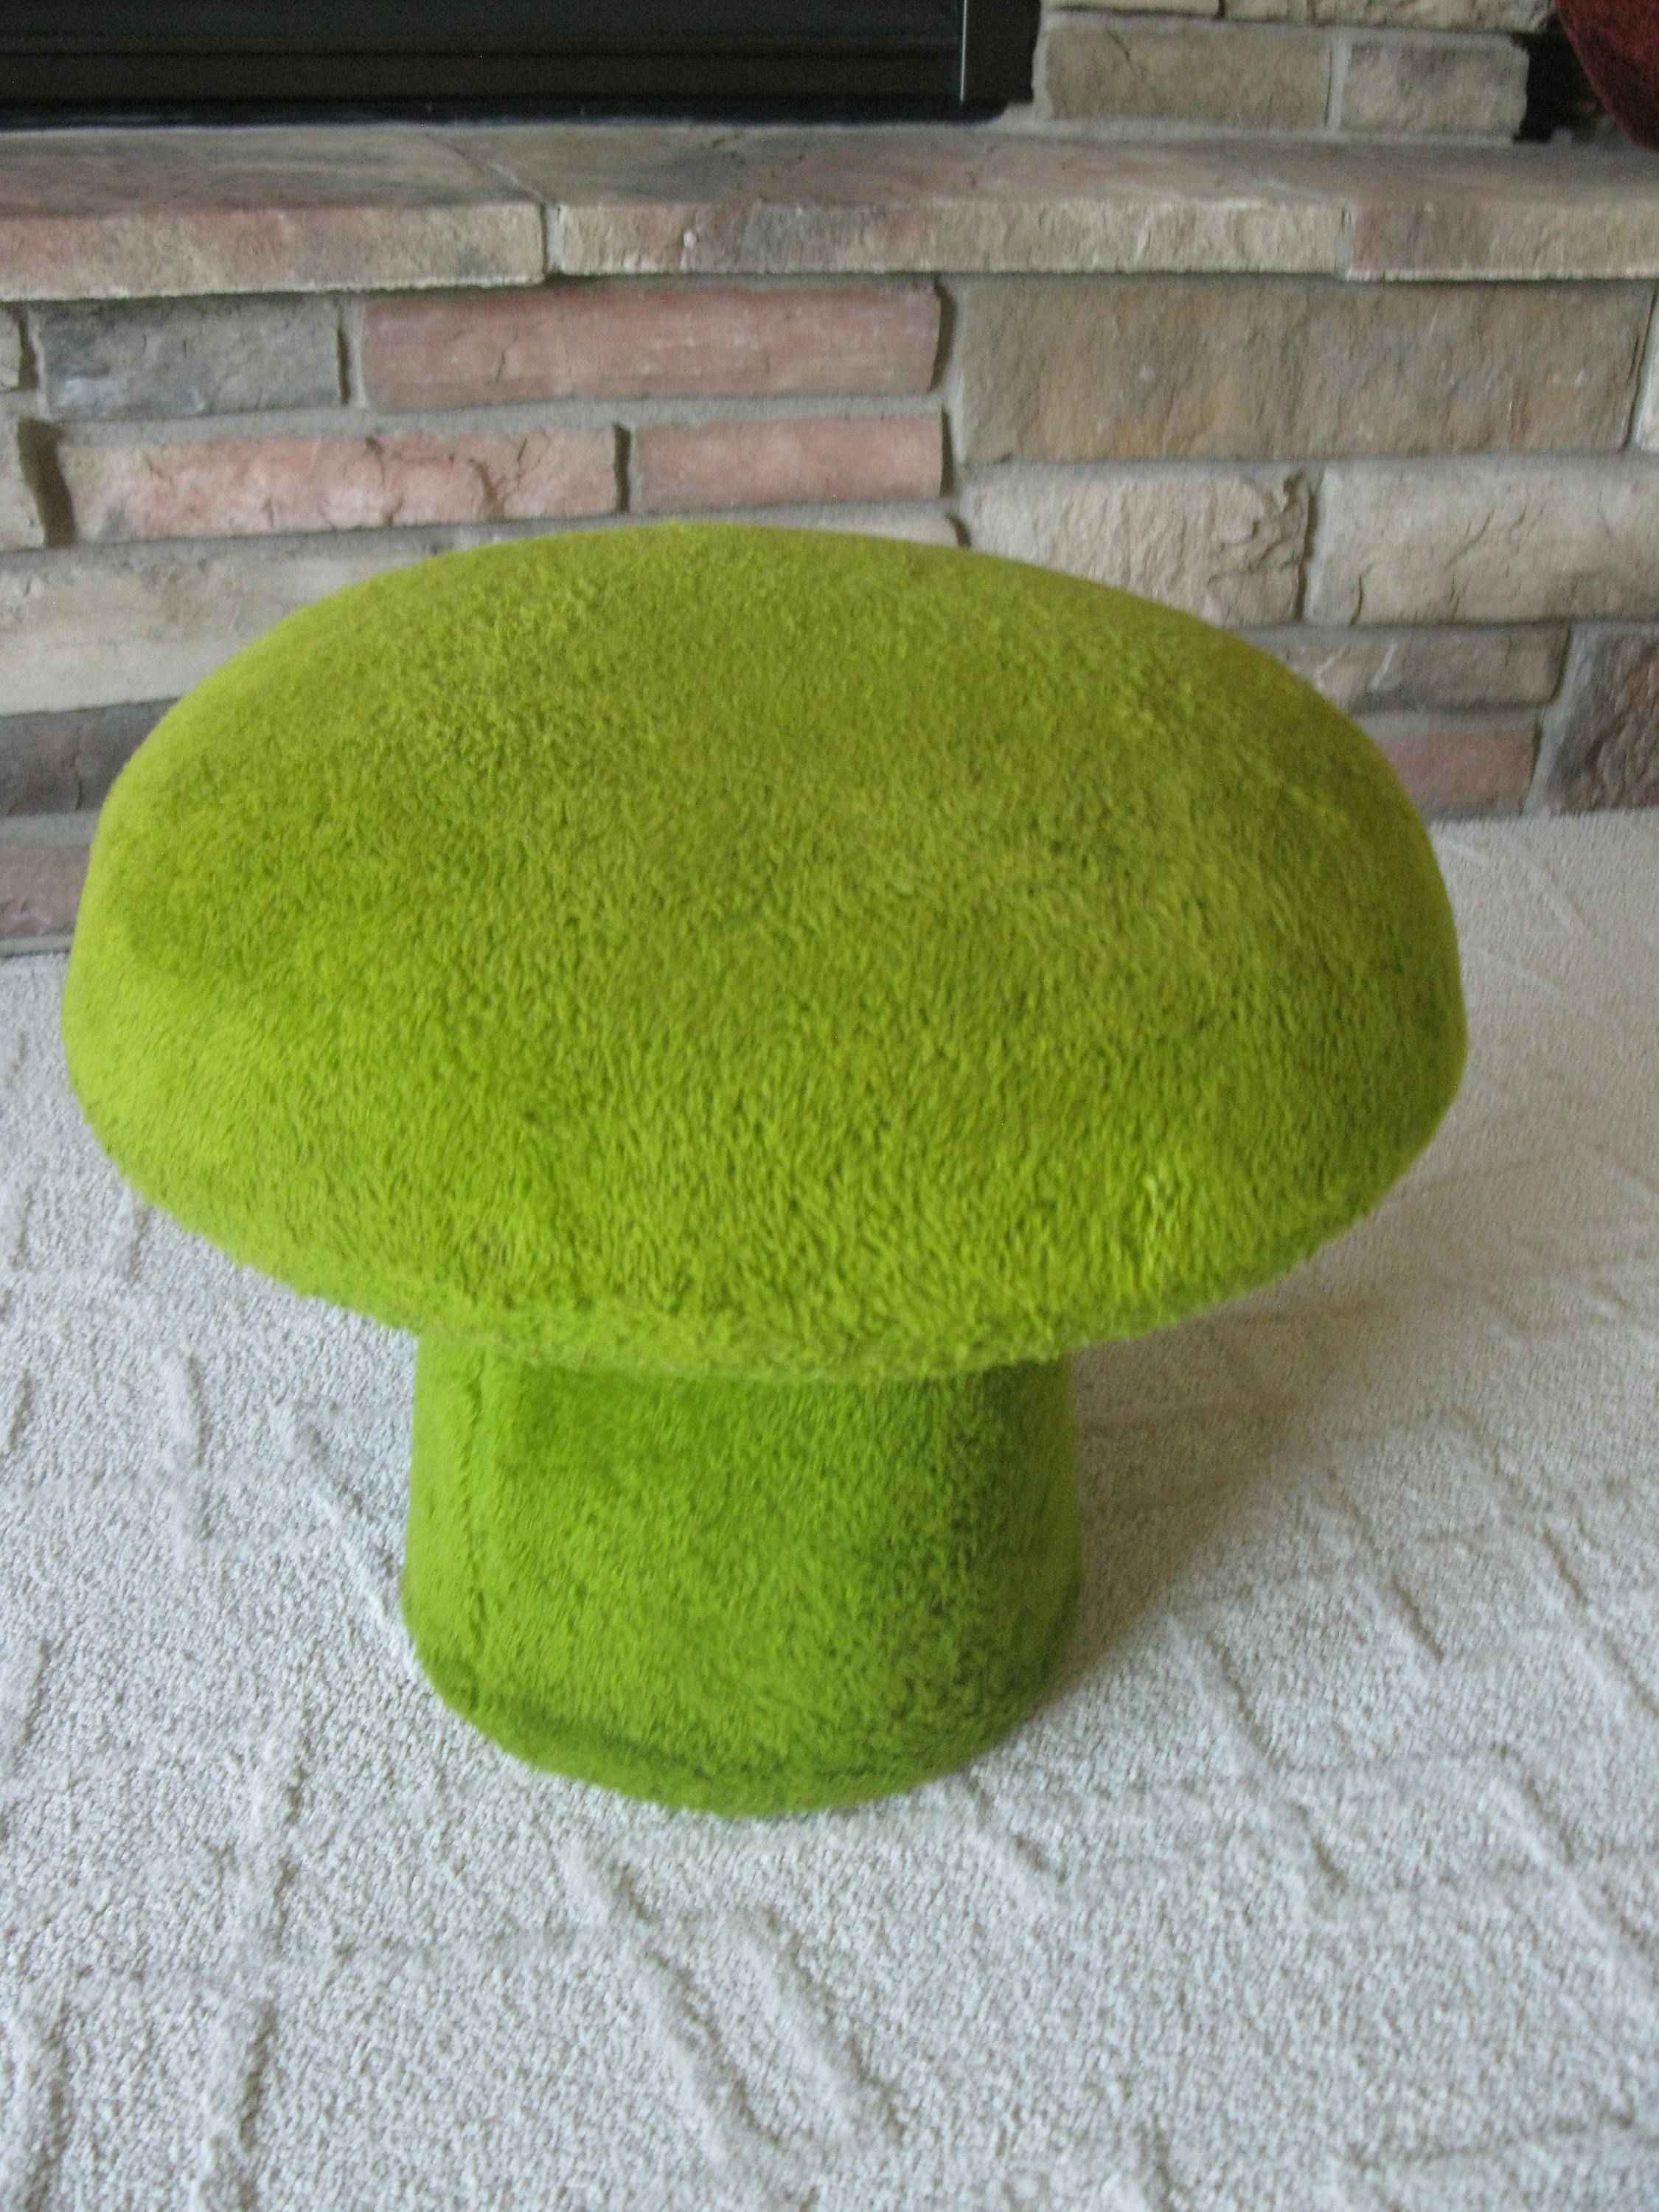 Groovy Mushroom Ottoman 1960S70S Plush Avocado Green Footstool Hassock Mad